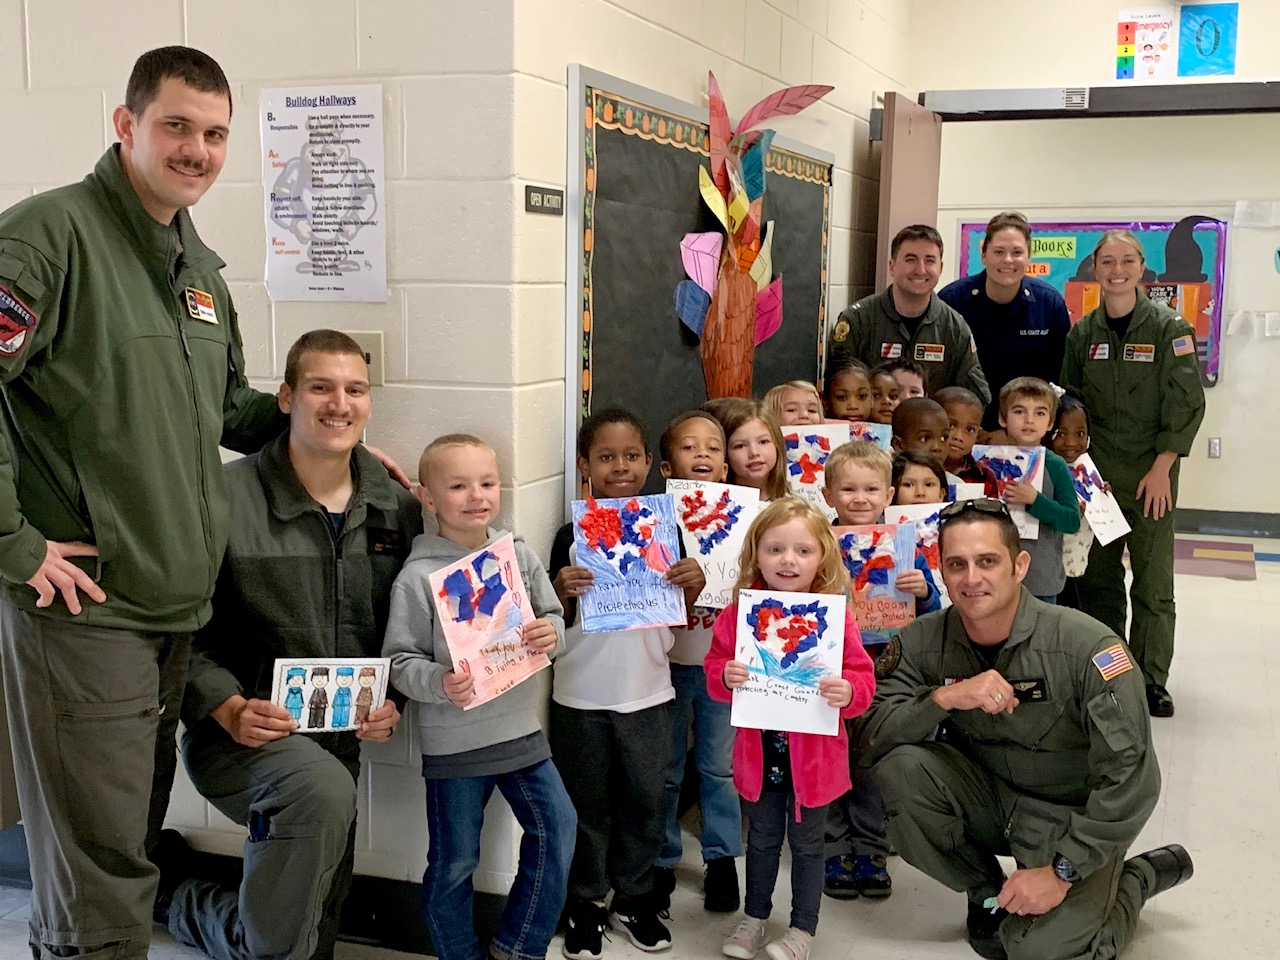 volunteer Coast Guard members with local students showing artwork at school